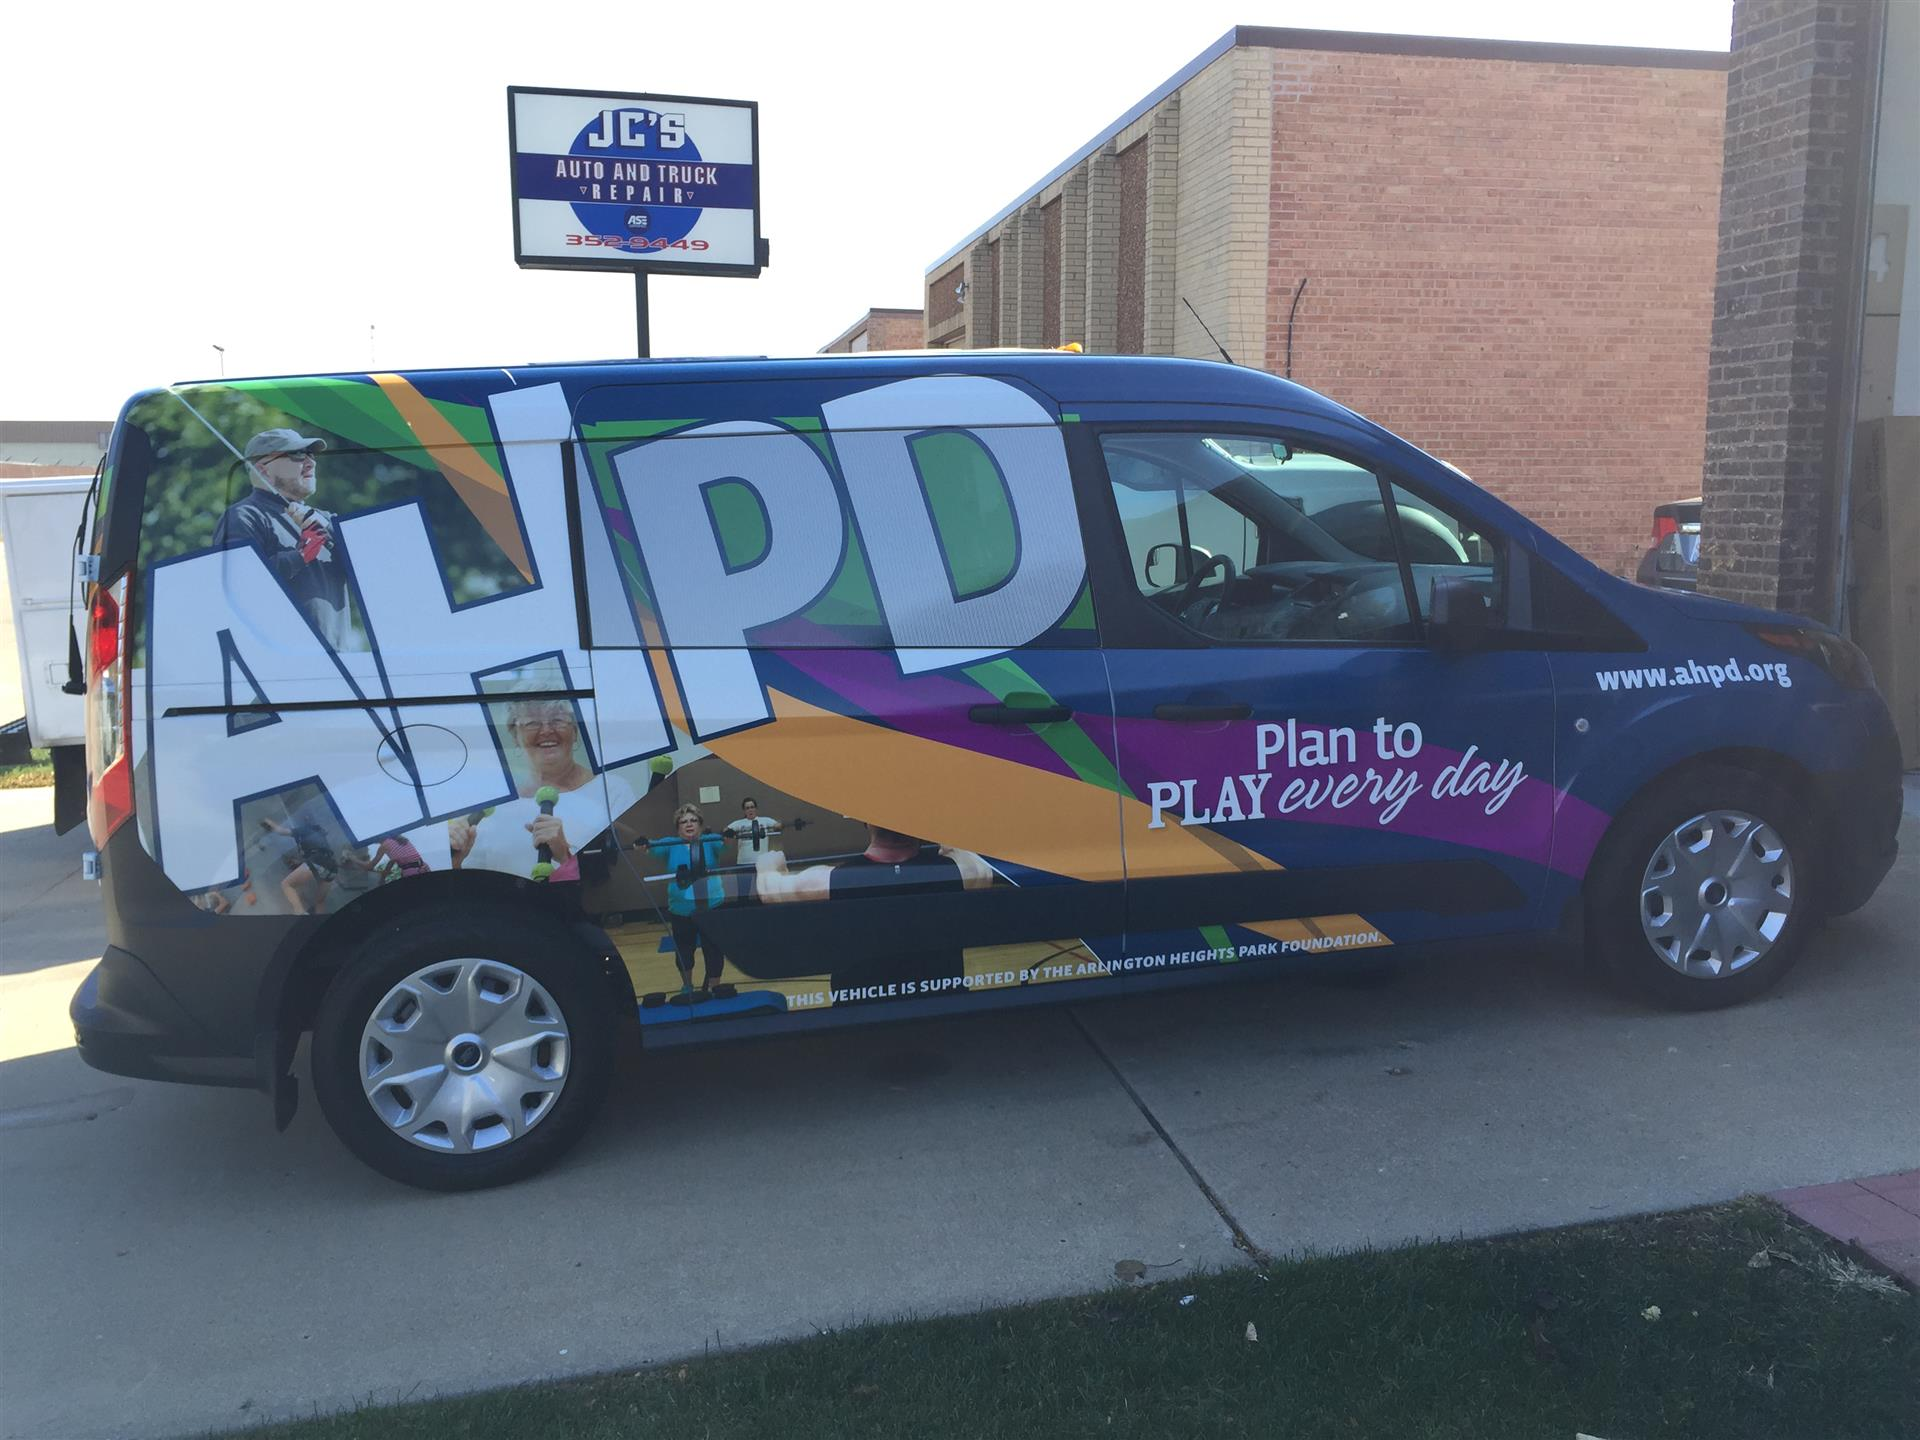 AHPD Vehicle Wrap